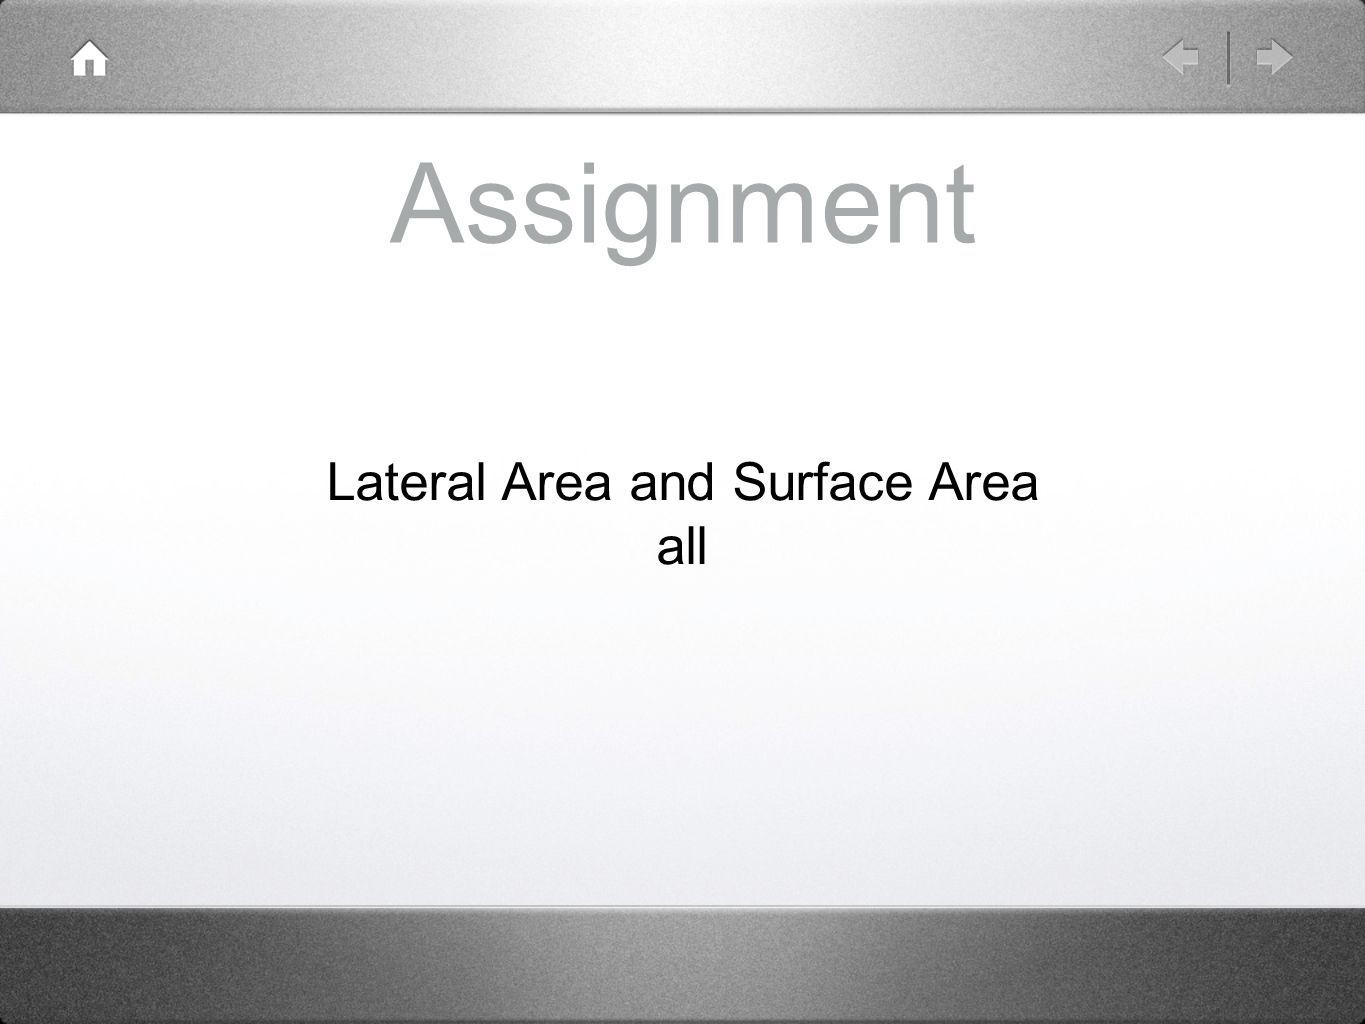 Lateral Area and Surface Area